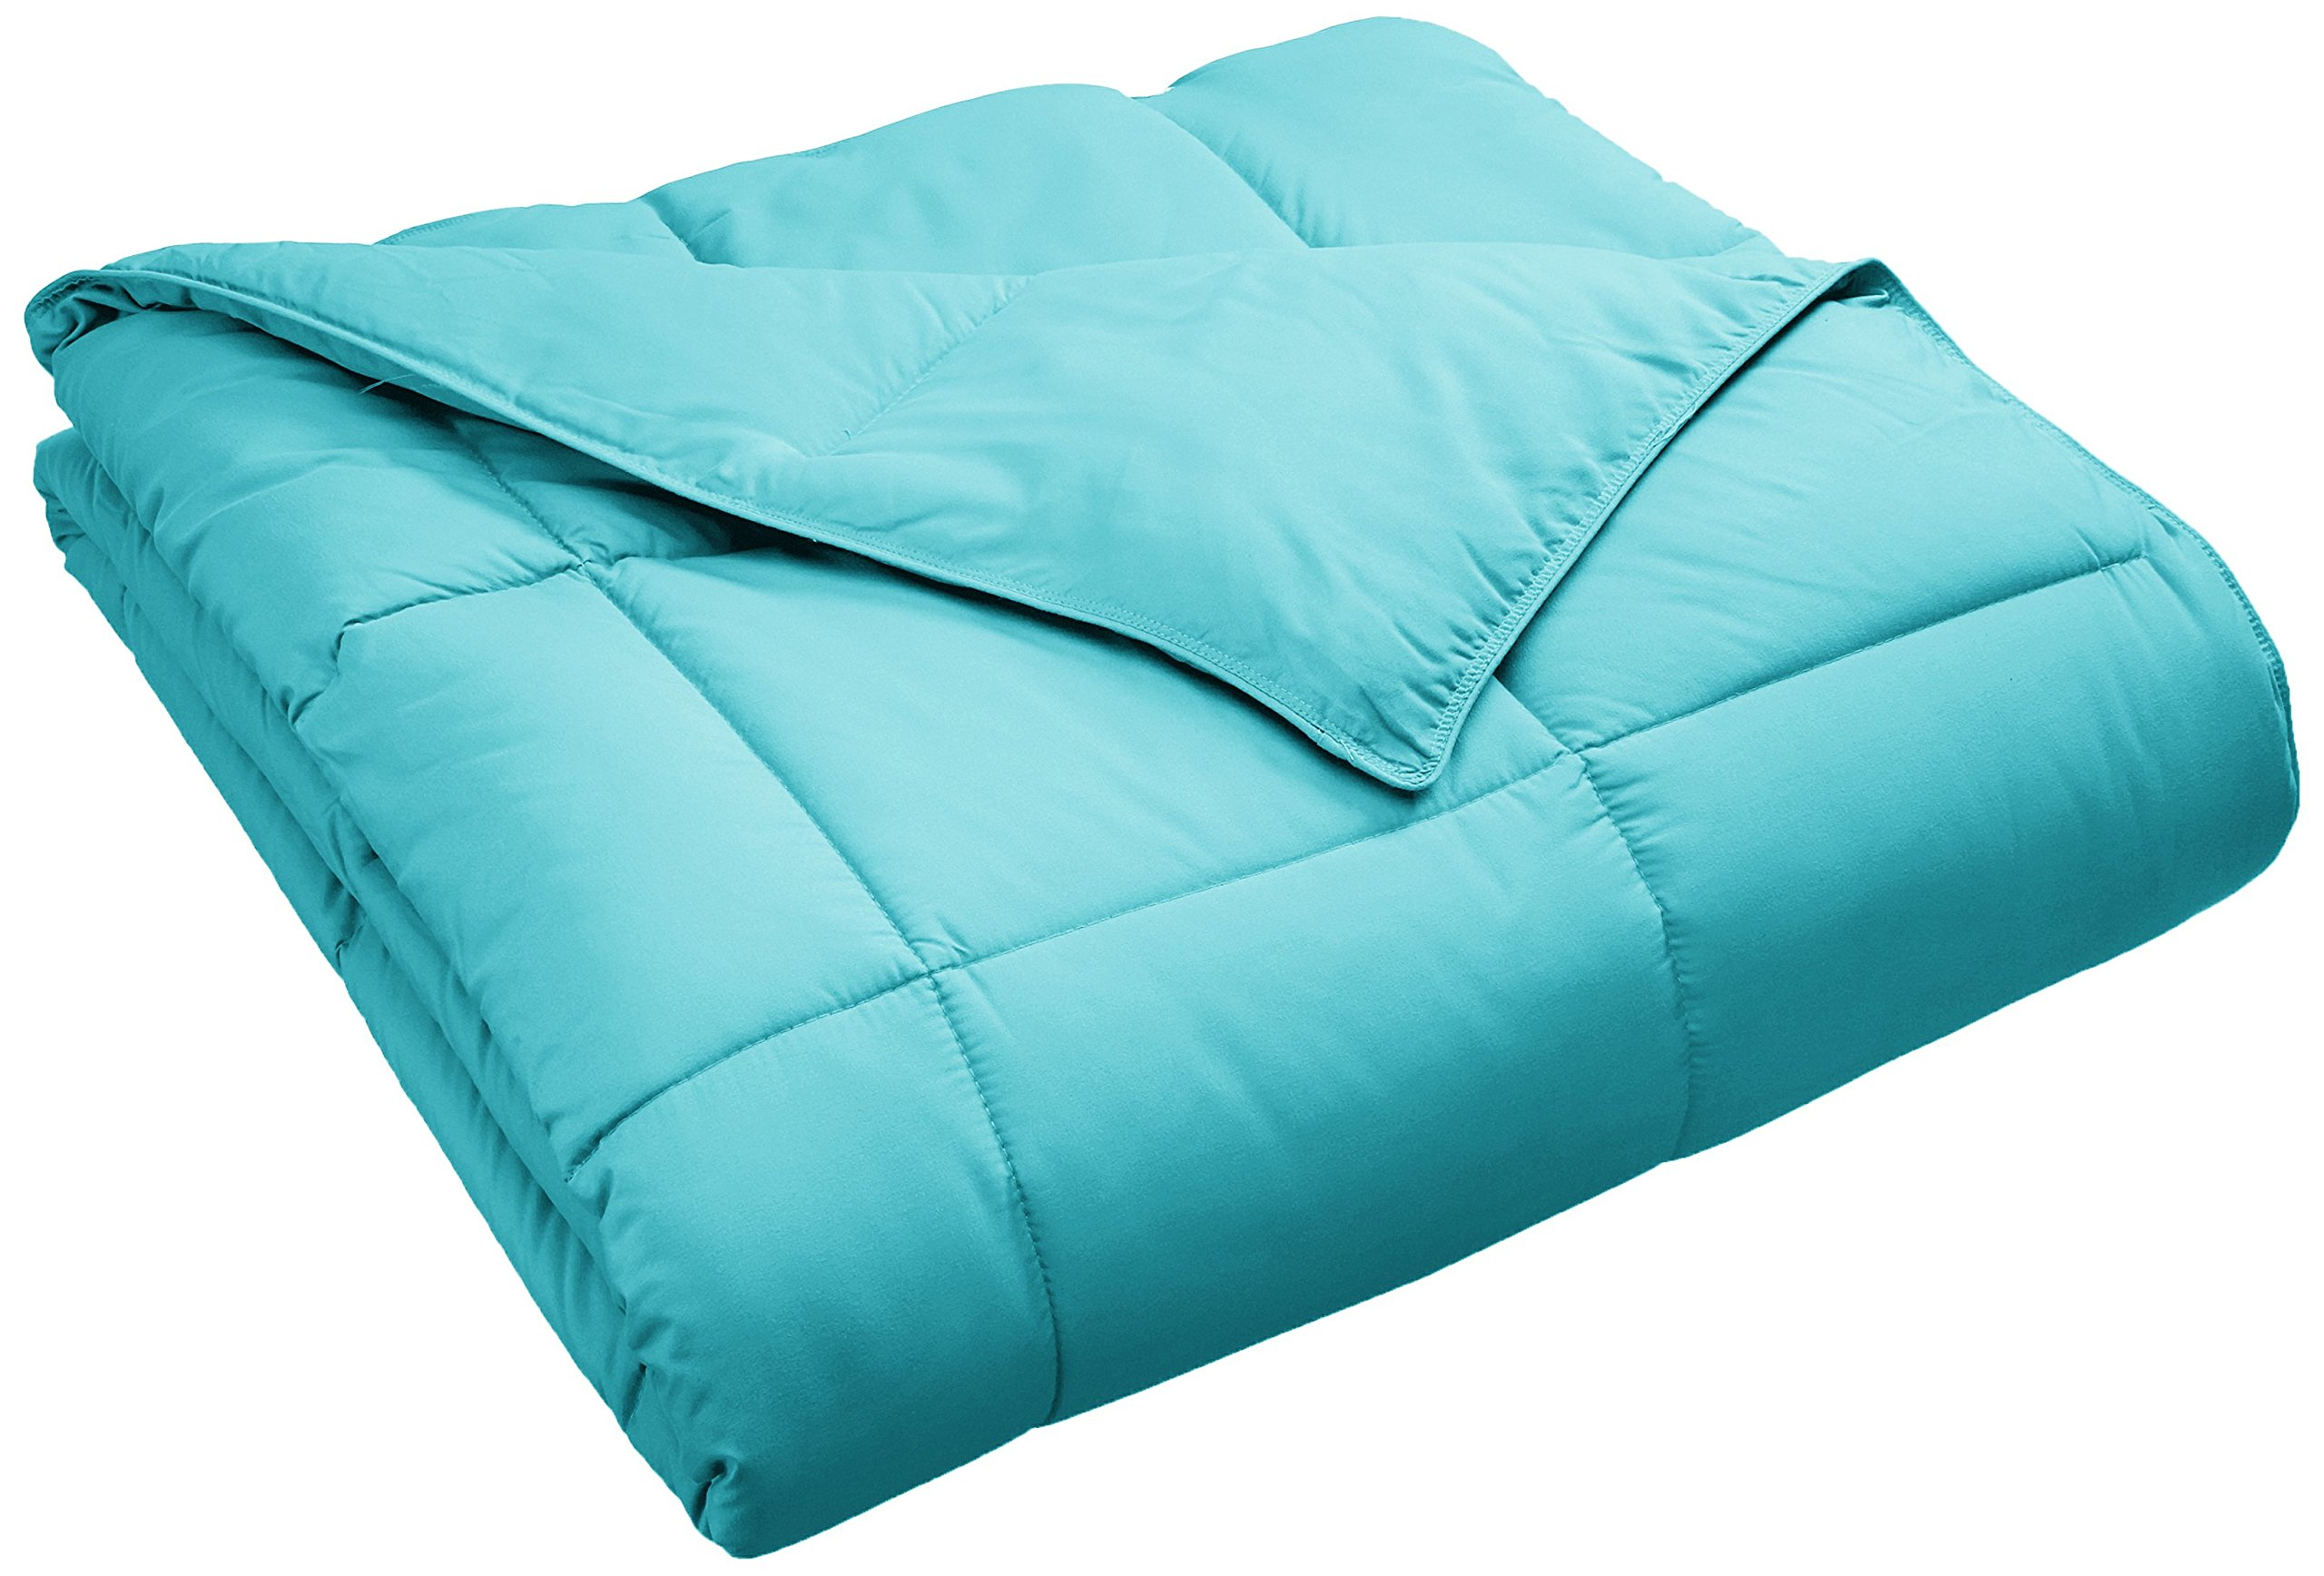 Superior Classic All-Season Down Alternative Comforter with Baffle Box Construction, Warm Hypoallergenic Filling - Twin Comforter, Turquoise